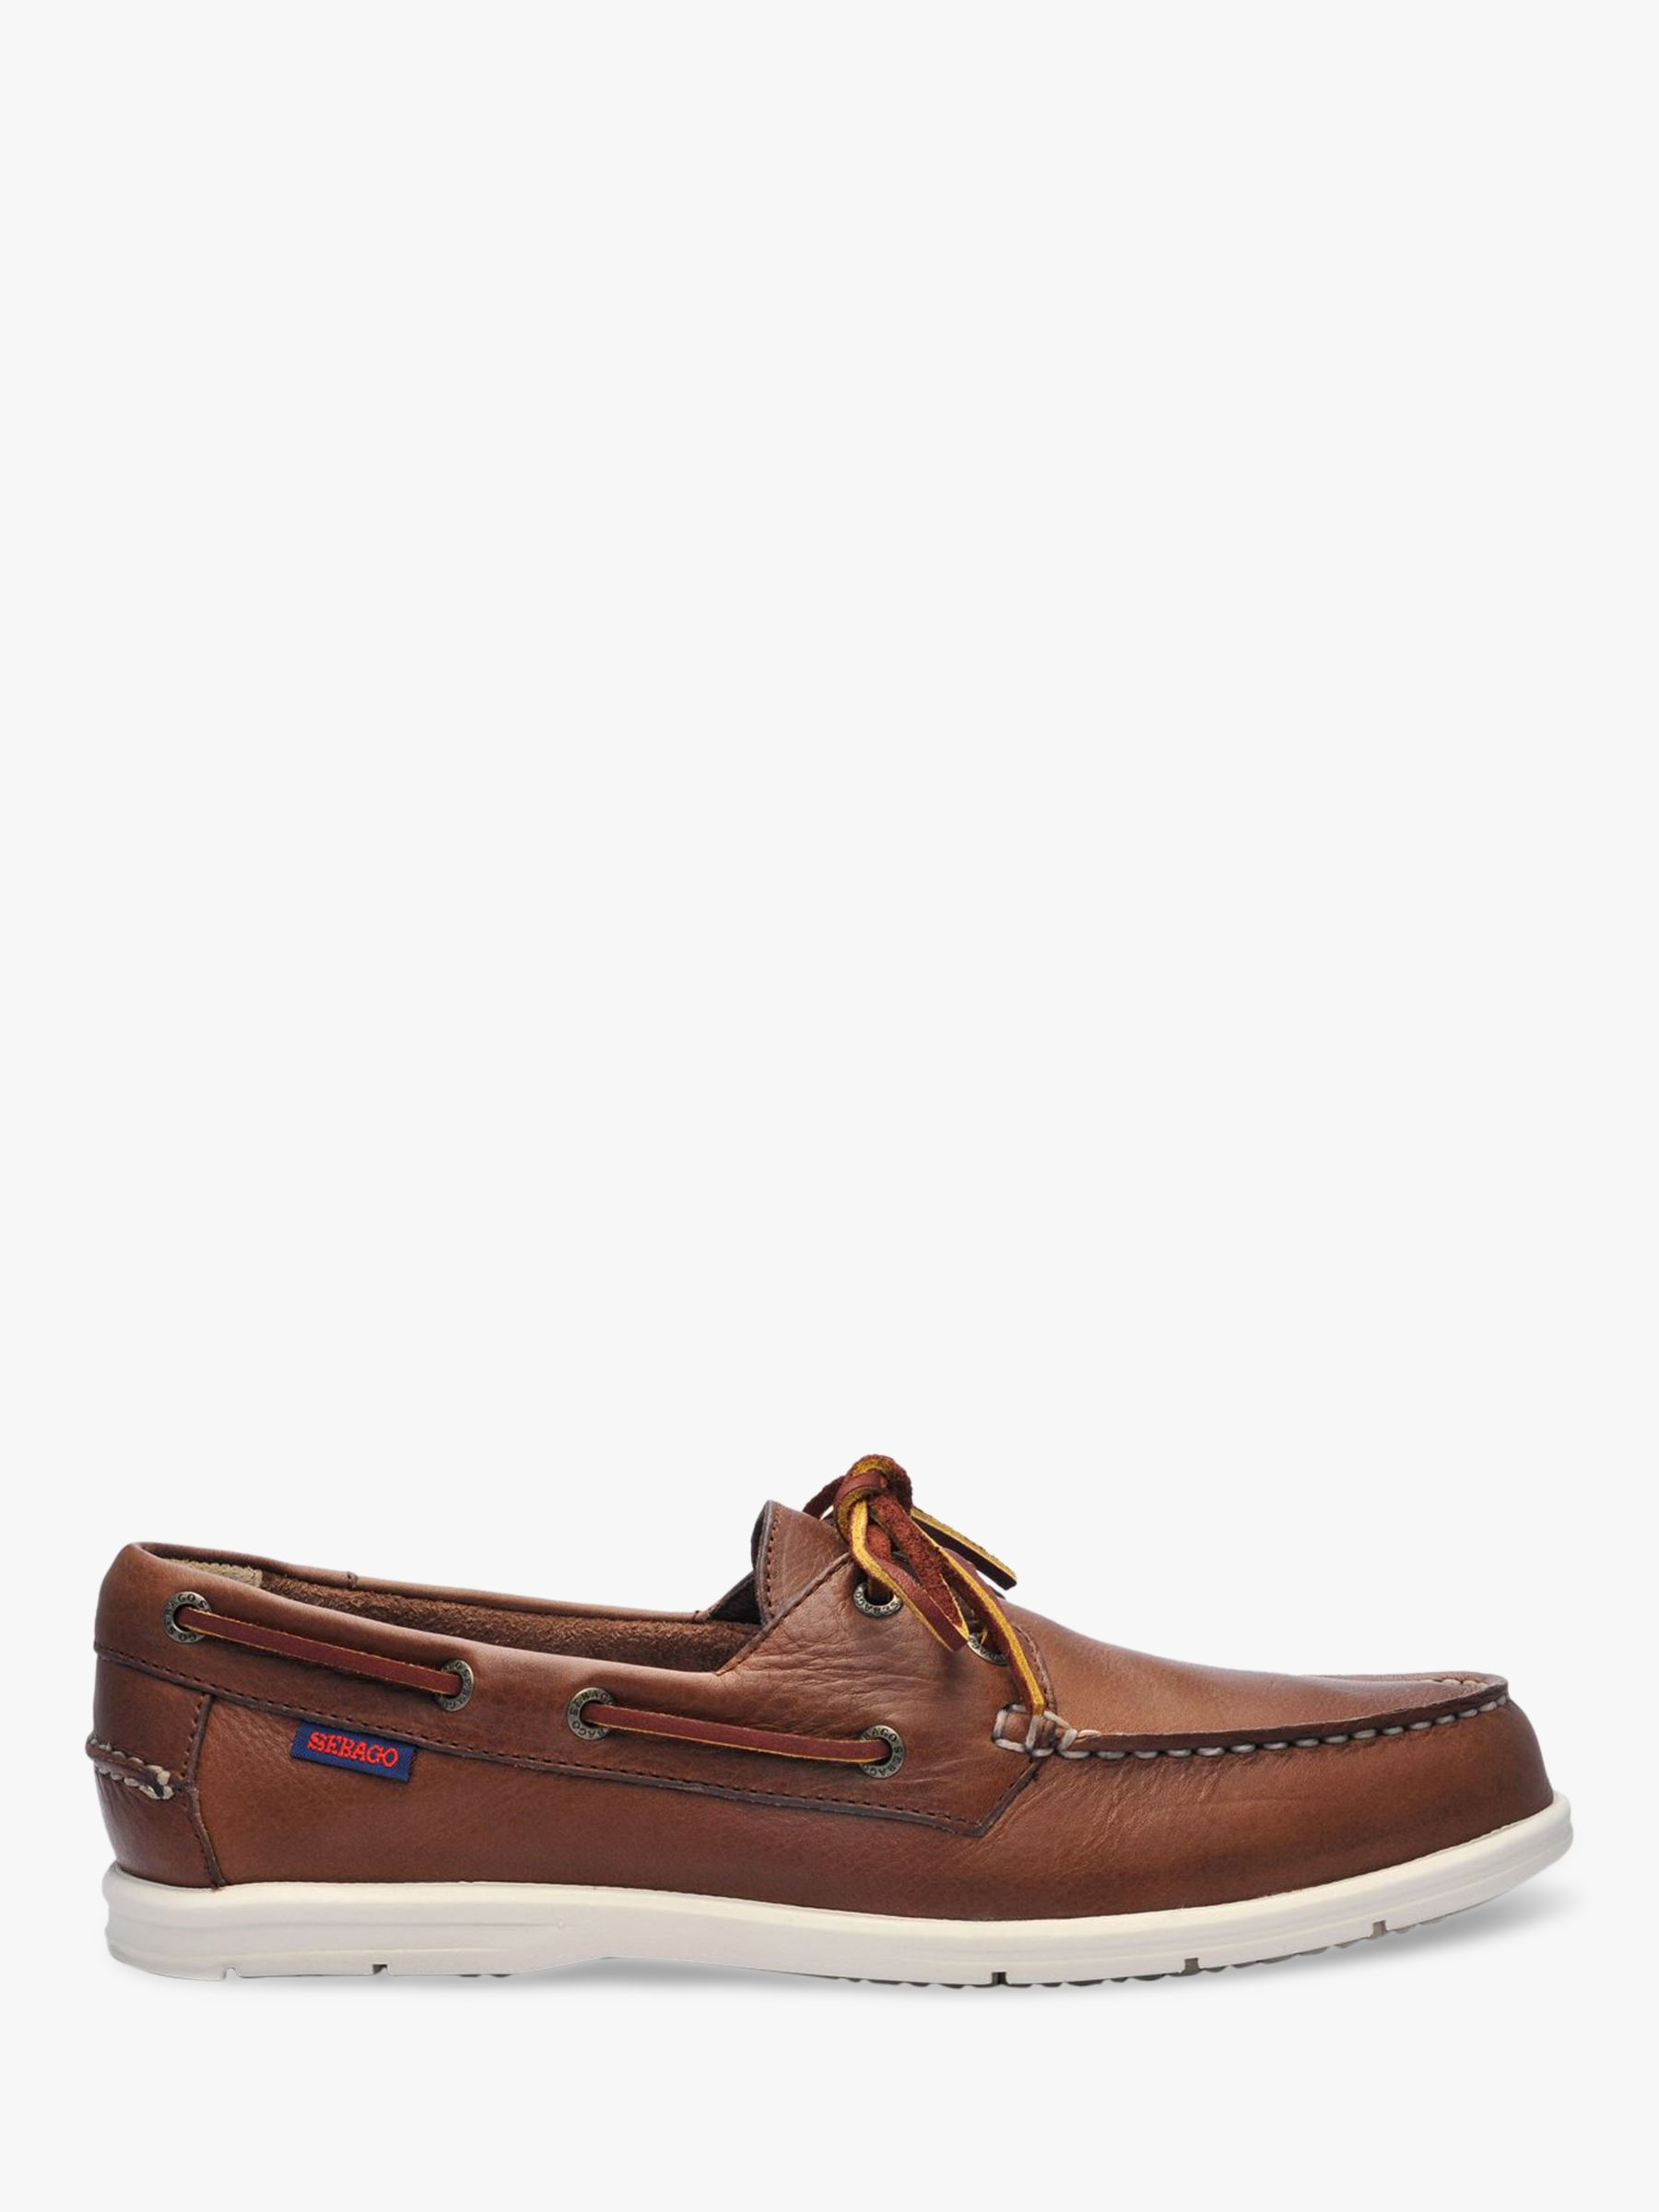 Sebago Sebago Naples Leather Boat Shoes, Dark Brown